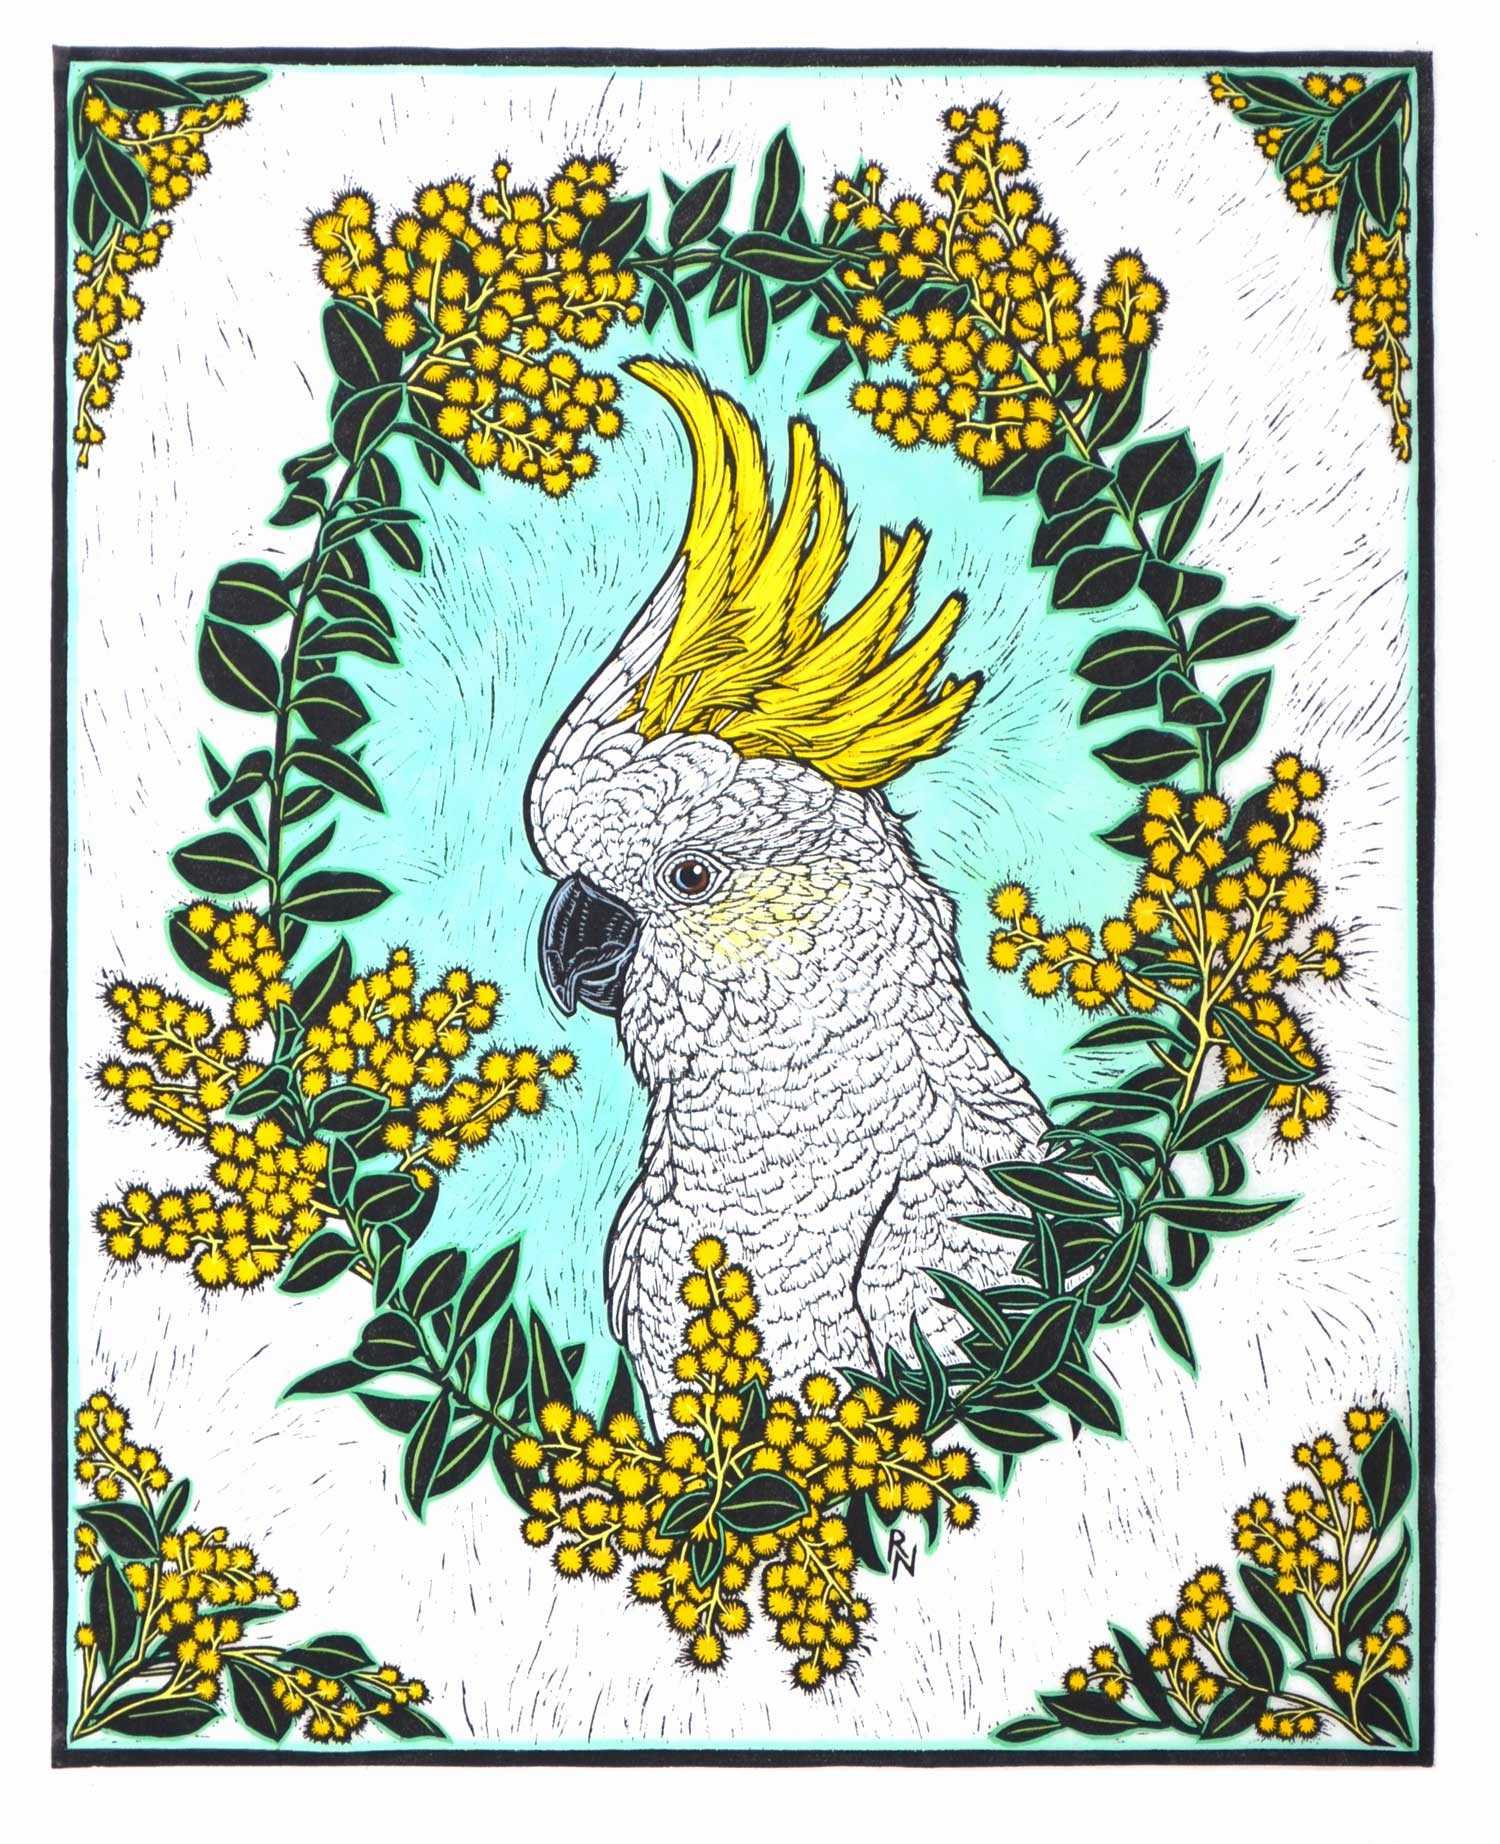 White Cockatoo and wattle  48 x 38.5 cm Edition of 50  Hand Coloured linocut on handmade japanese paPER  $1,100